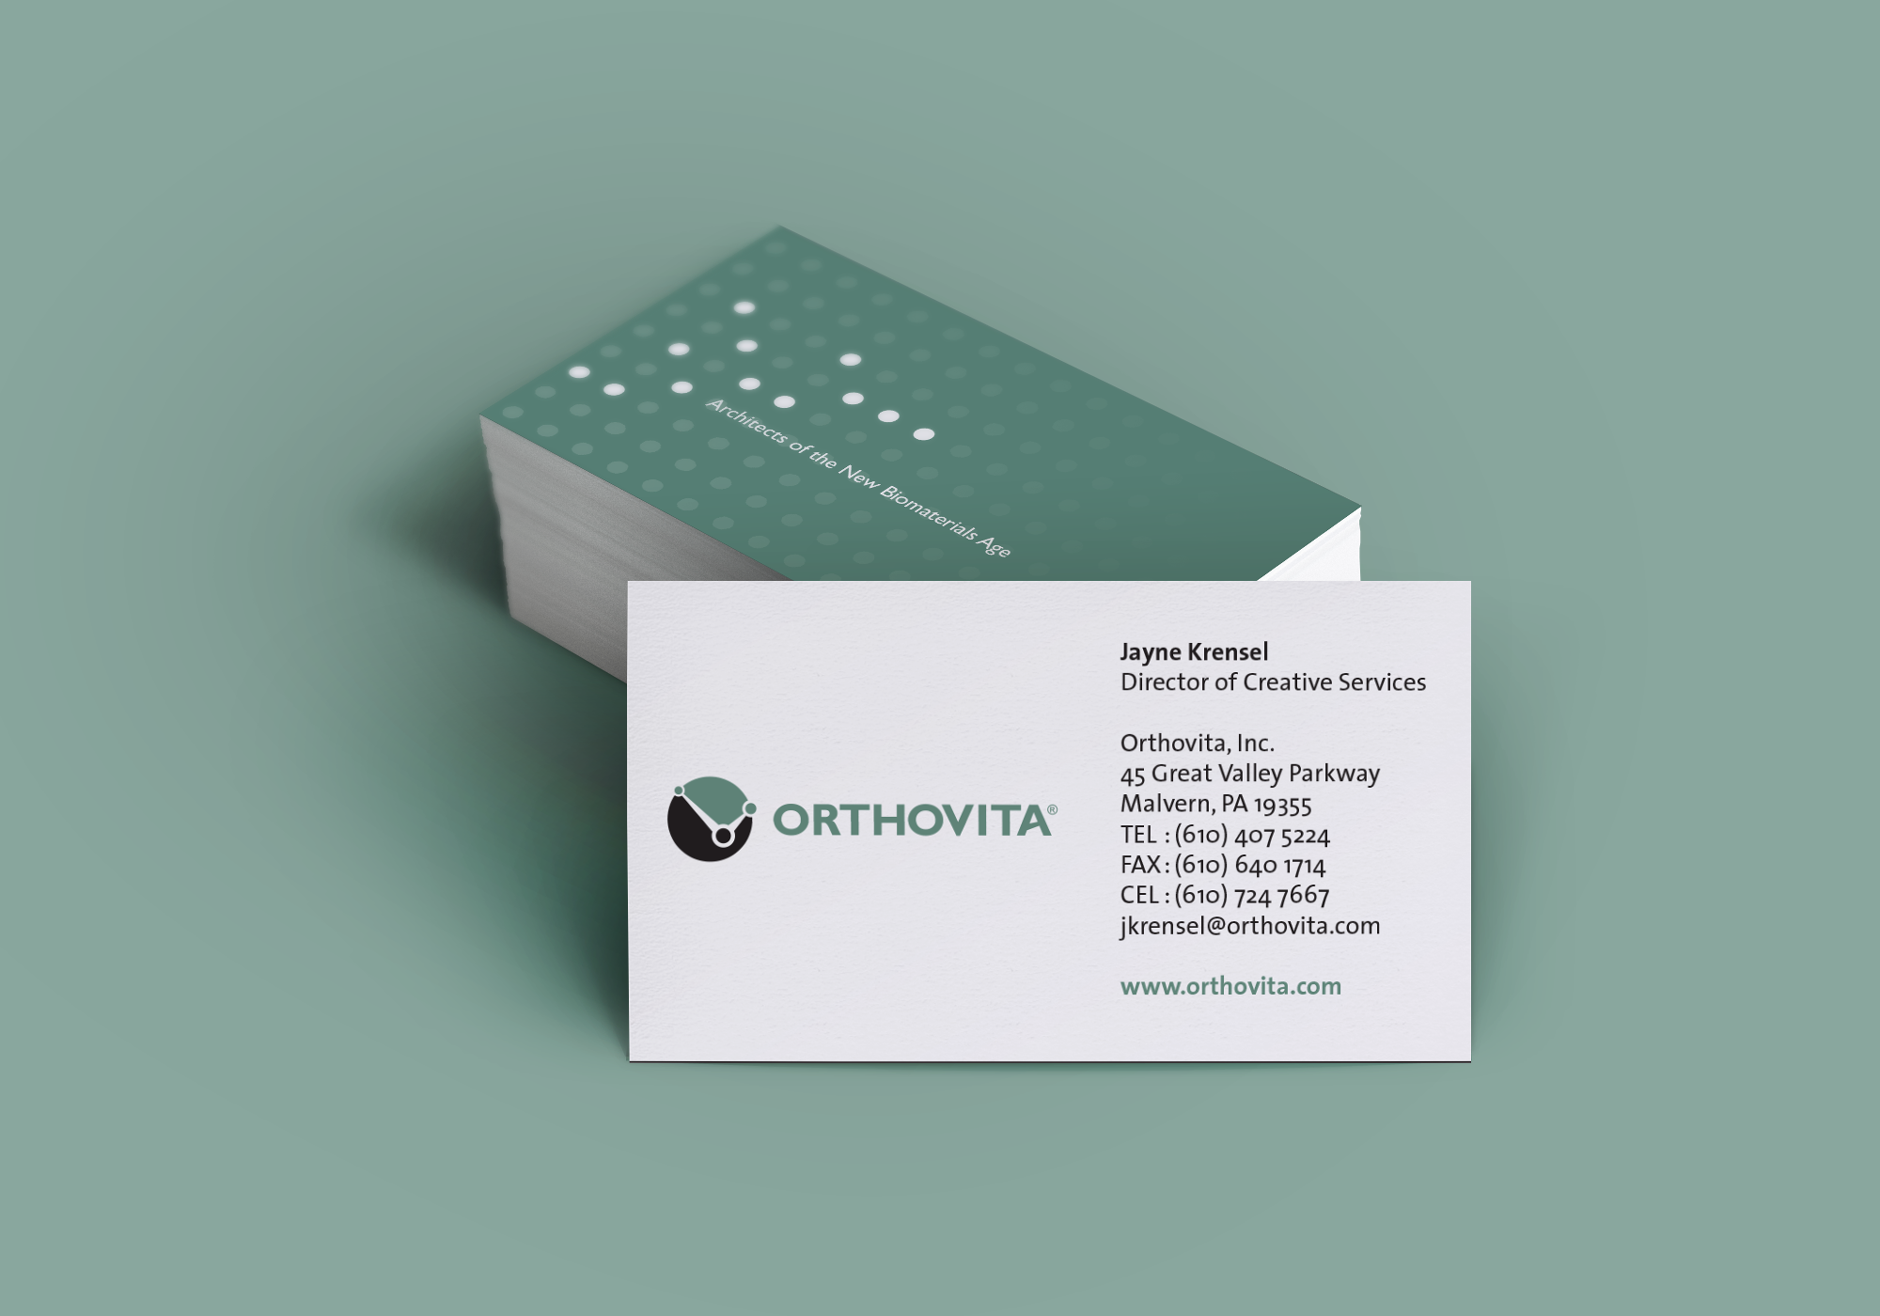 Orthovita Logo Business Cards | Branding | Healthy Brand